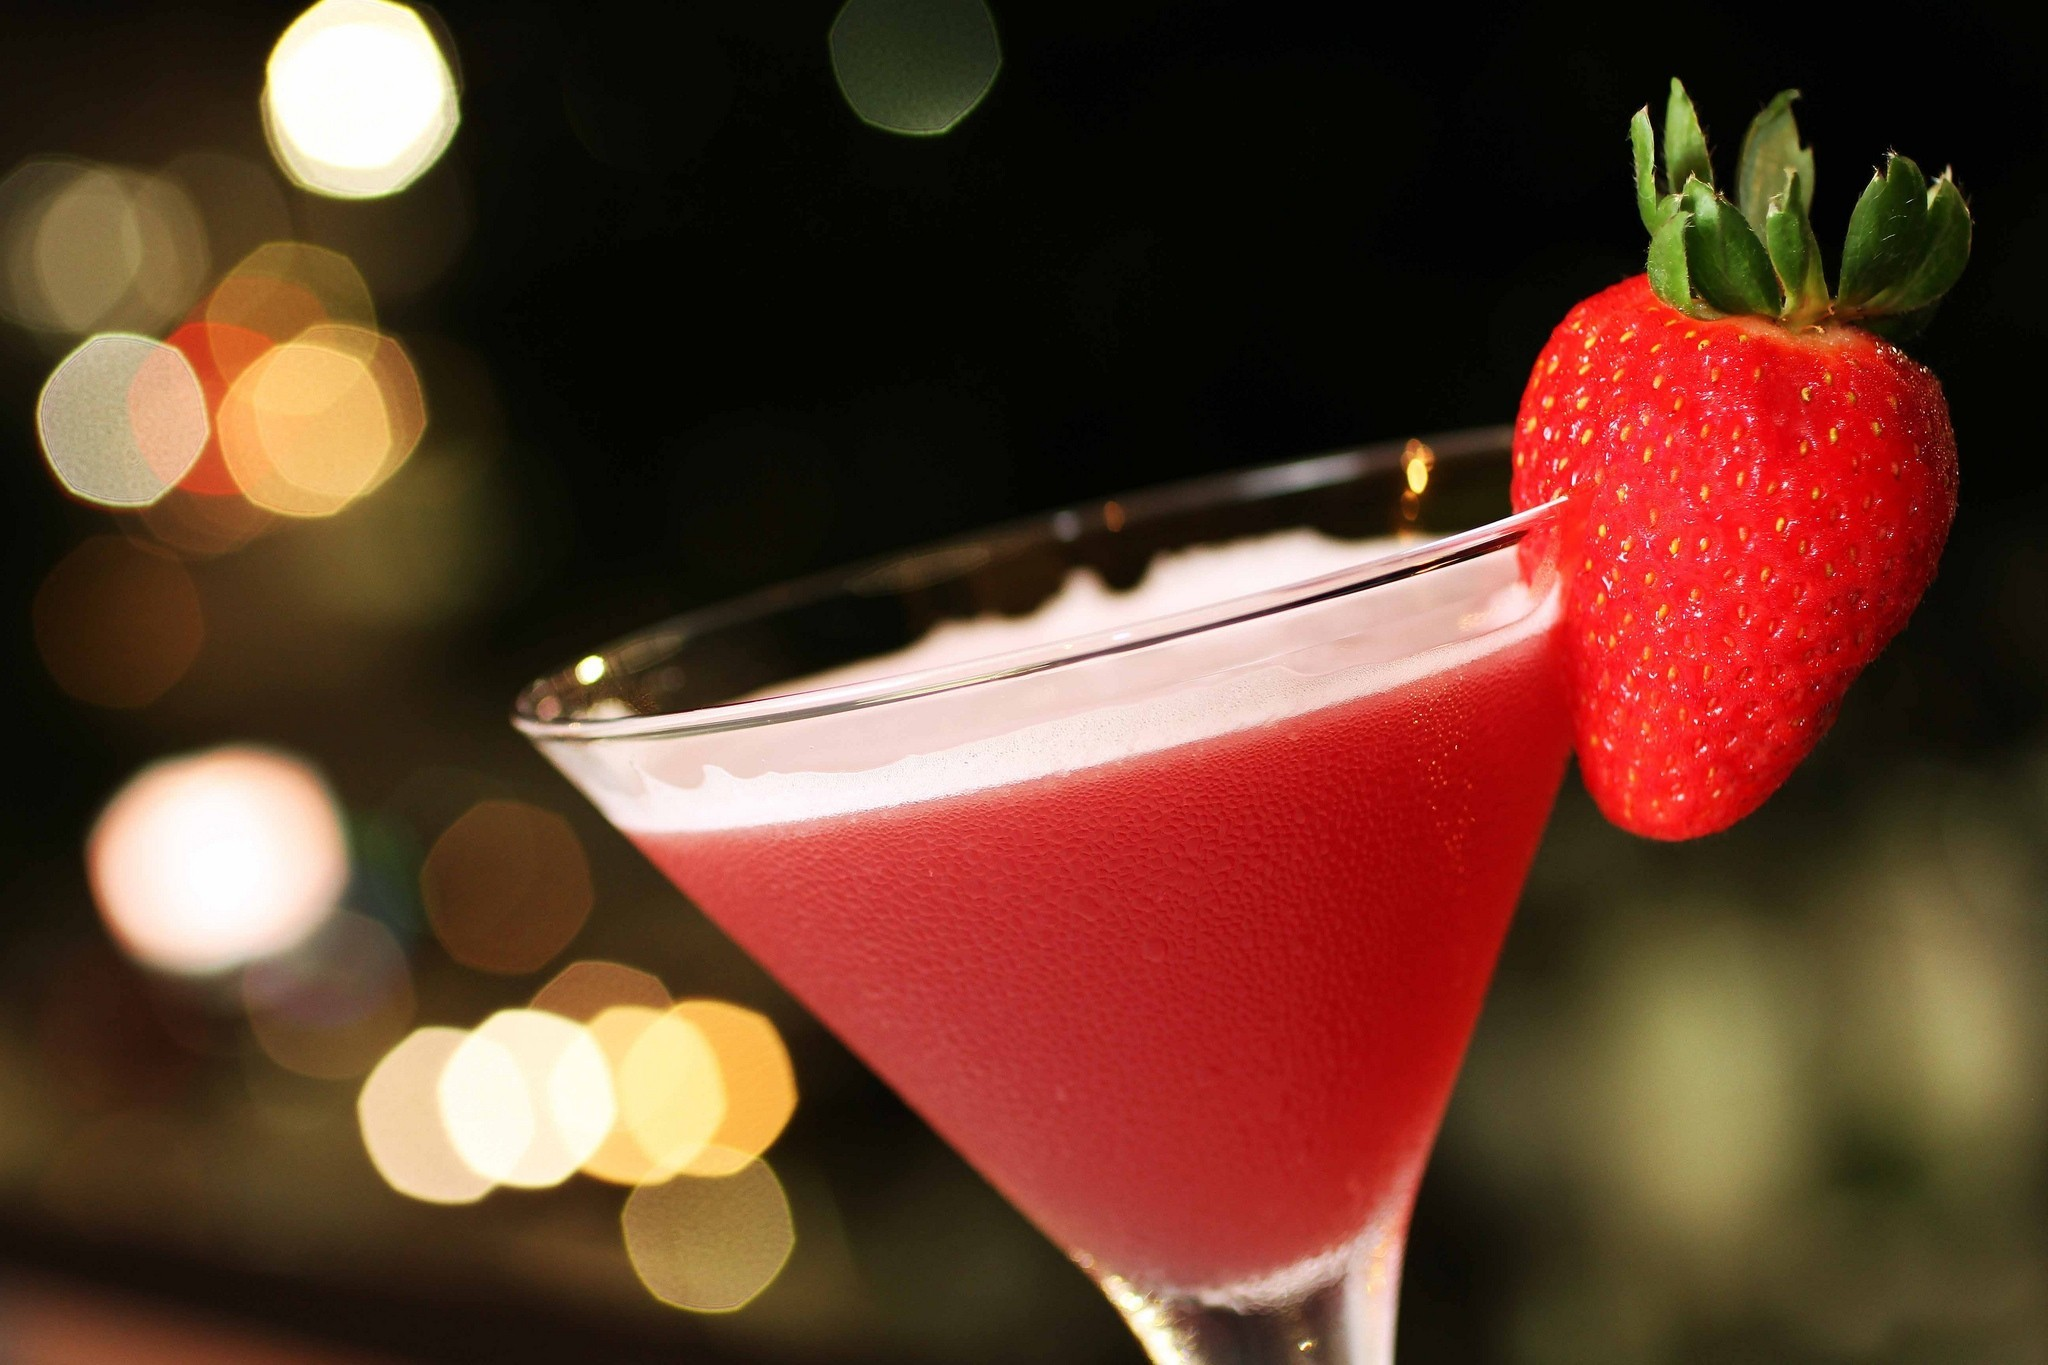 Cosmopolitan cocktail wallpaper  Cocktail HD Wallpaper | Background Image | 2048x1365 | ID:371404 ...